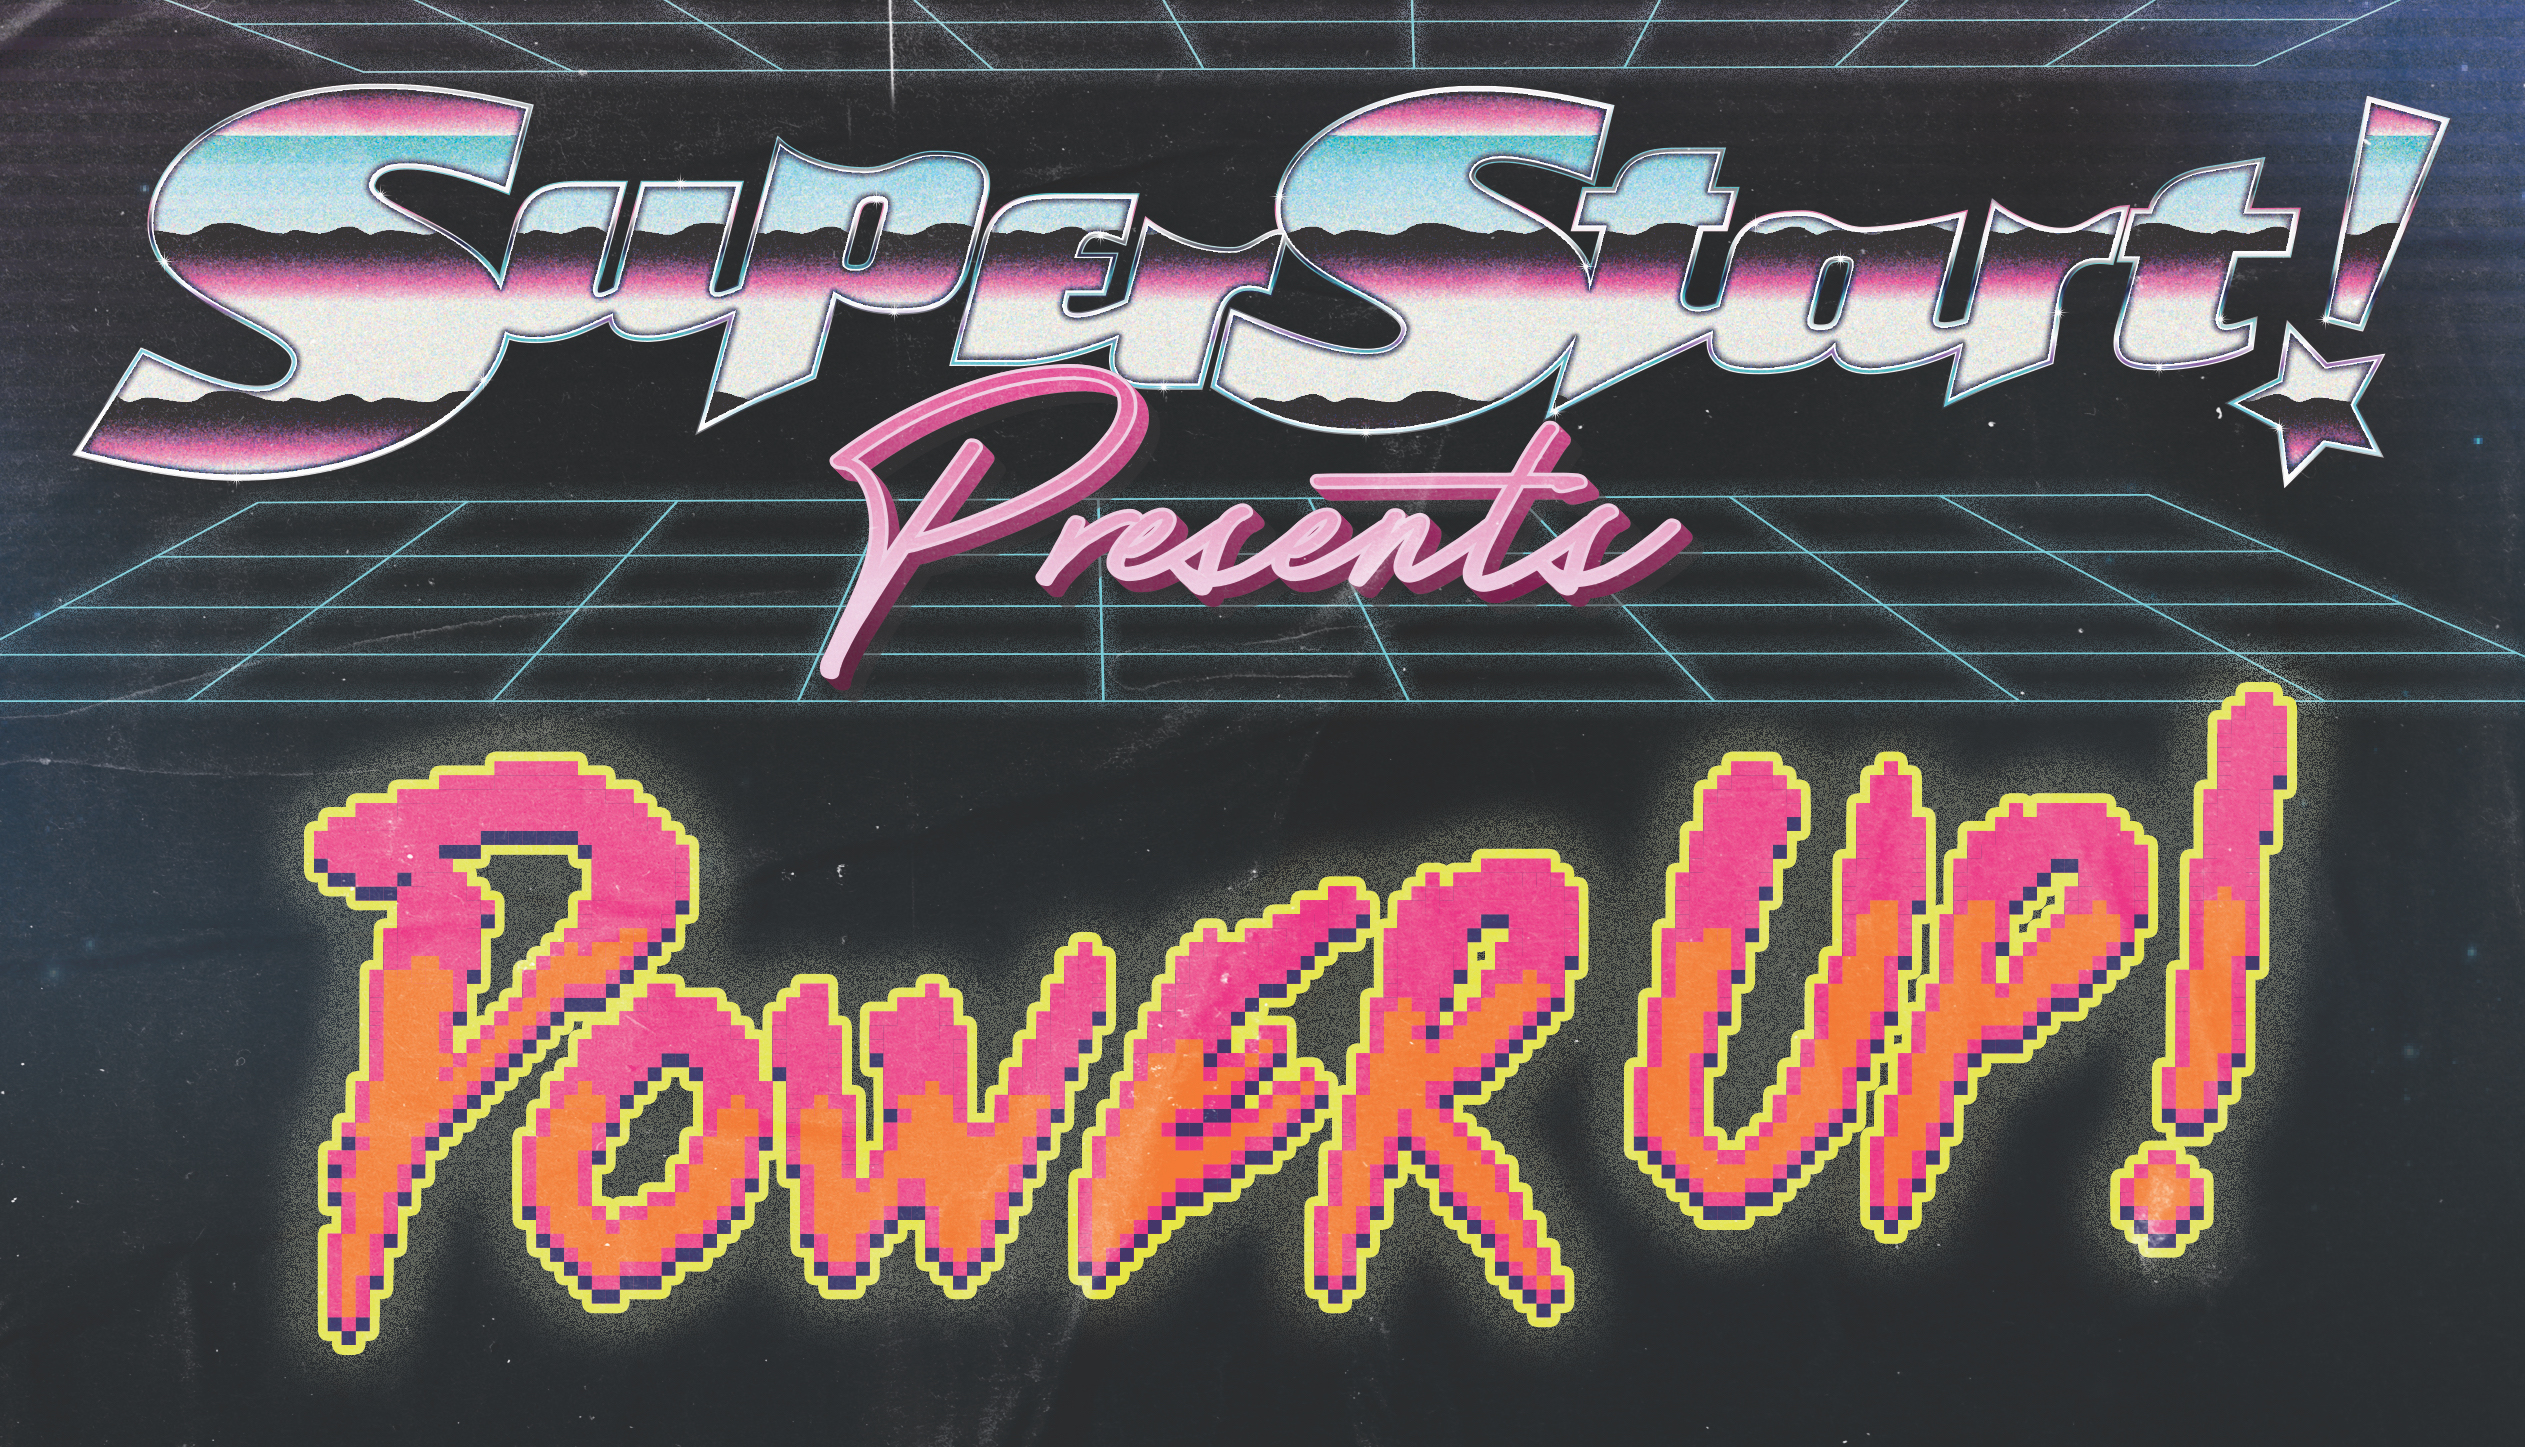 Power up theme